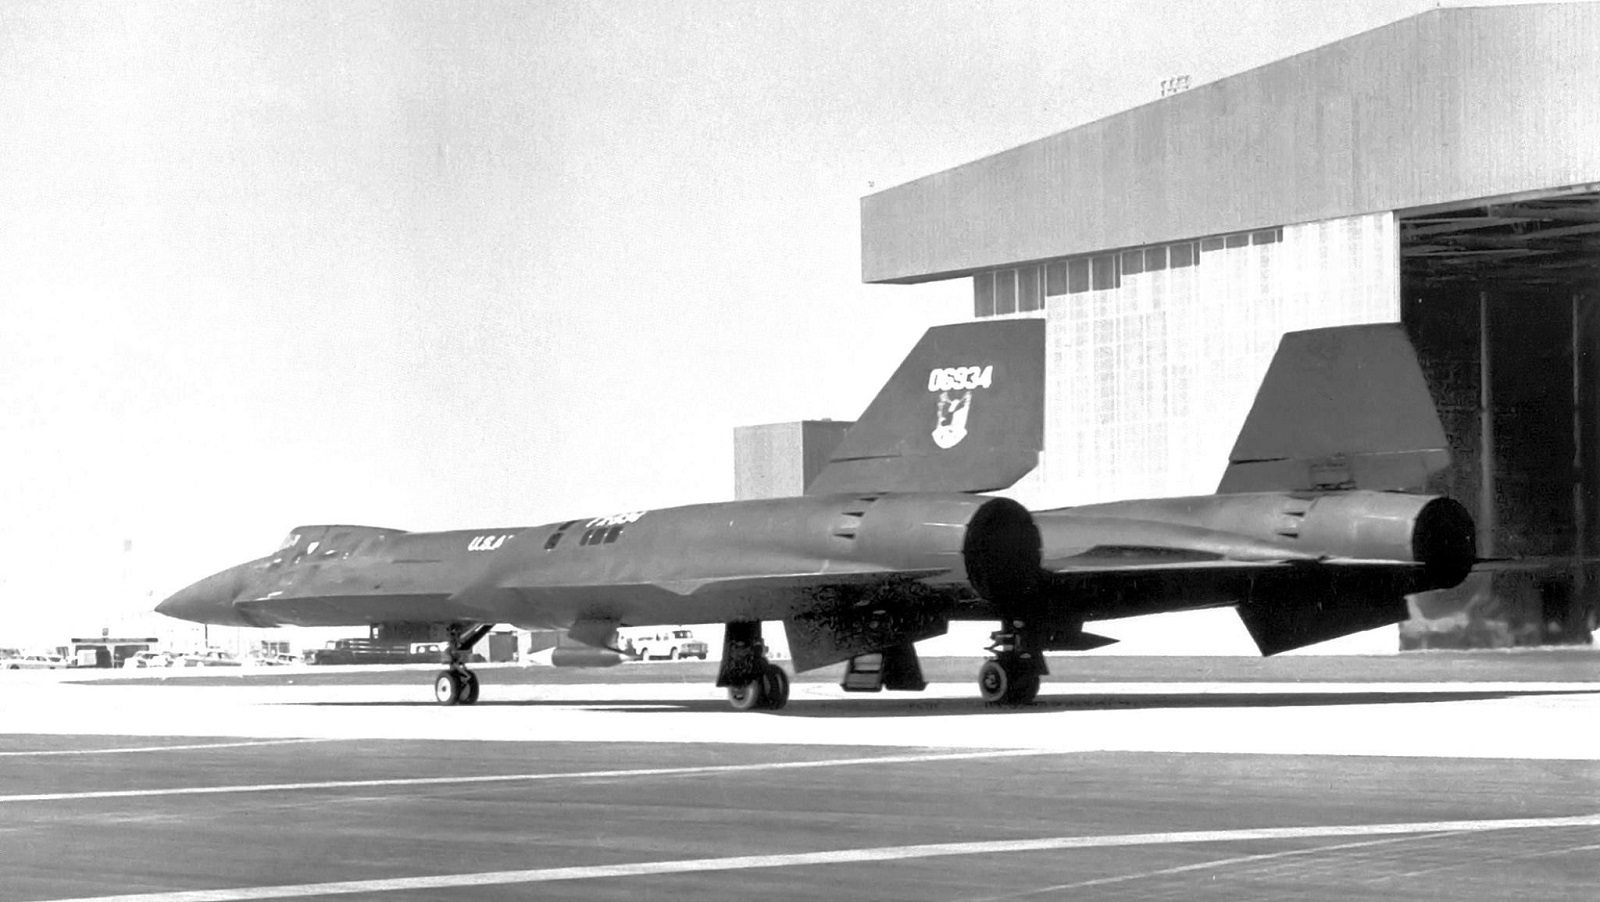 Flying Failures: These 5 U.S. Warplanes Were Total Flops